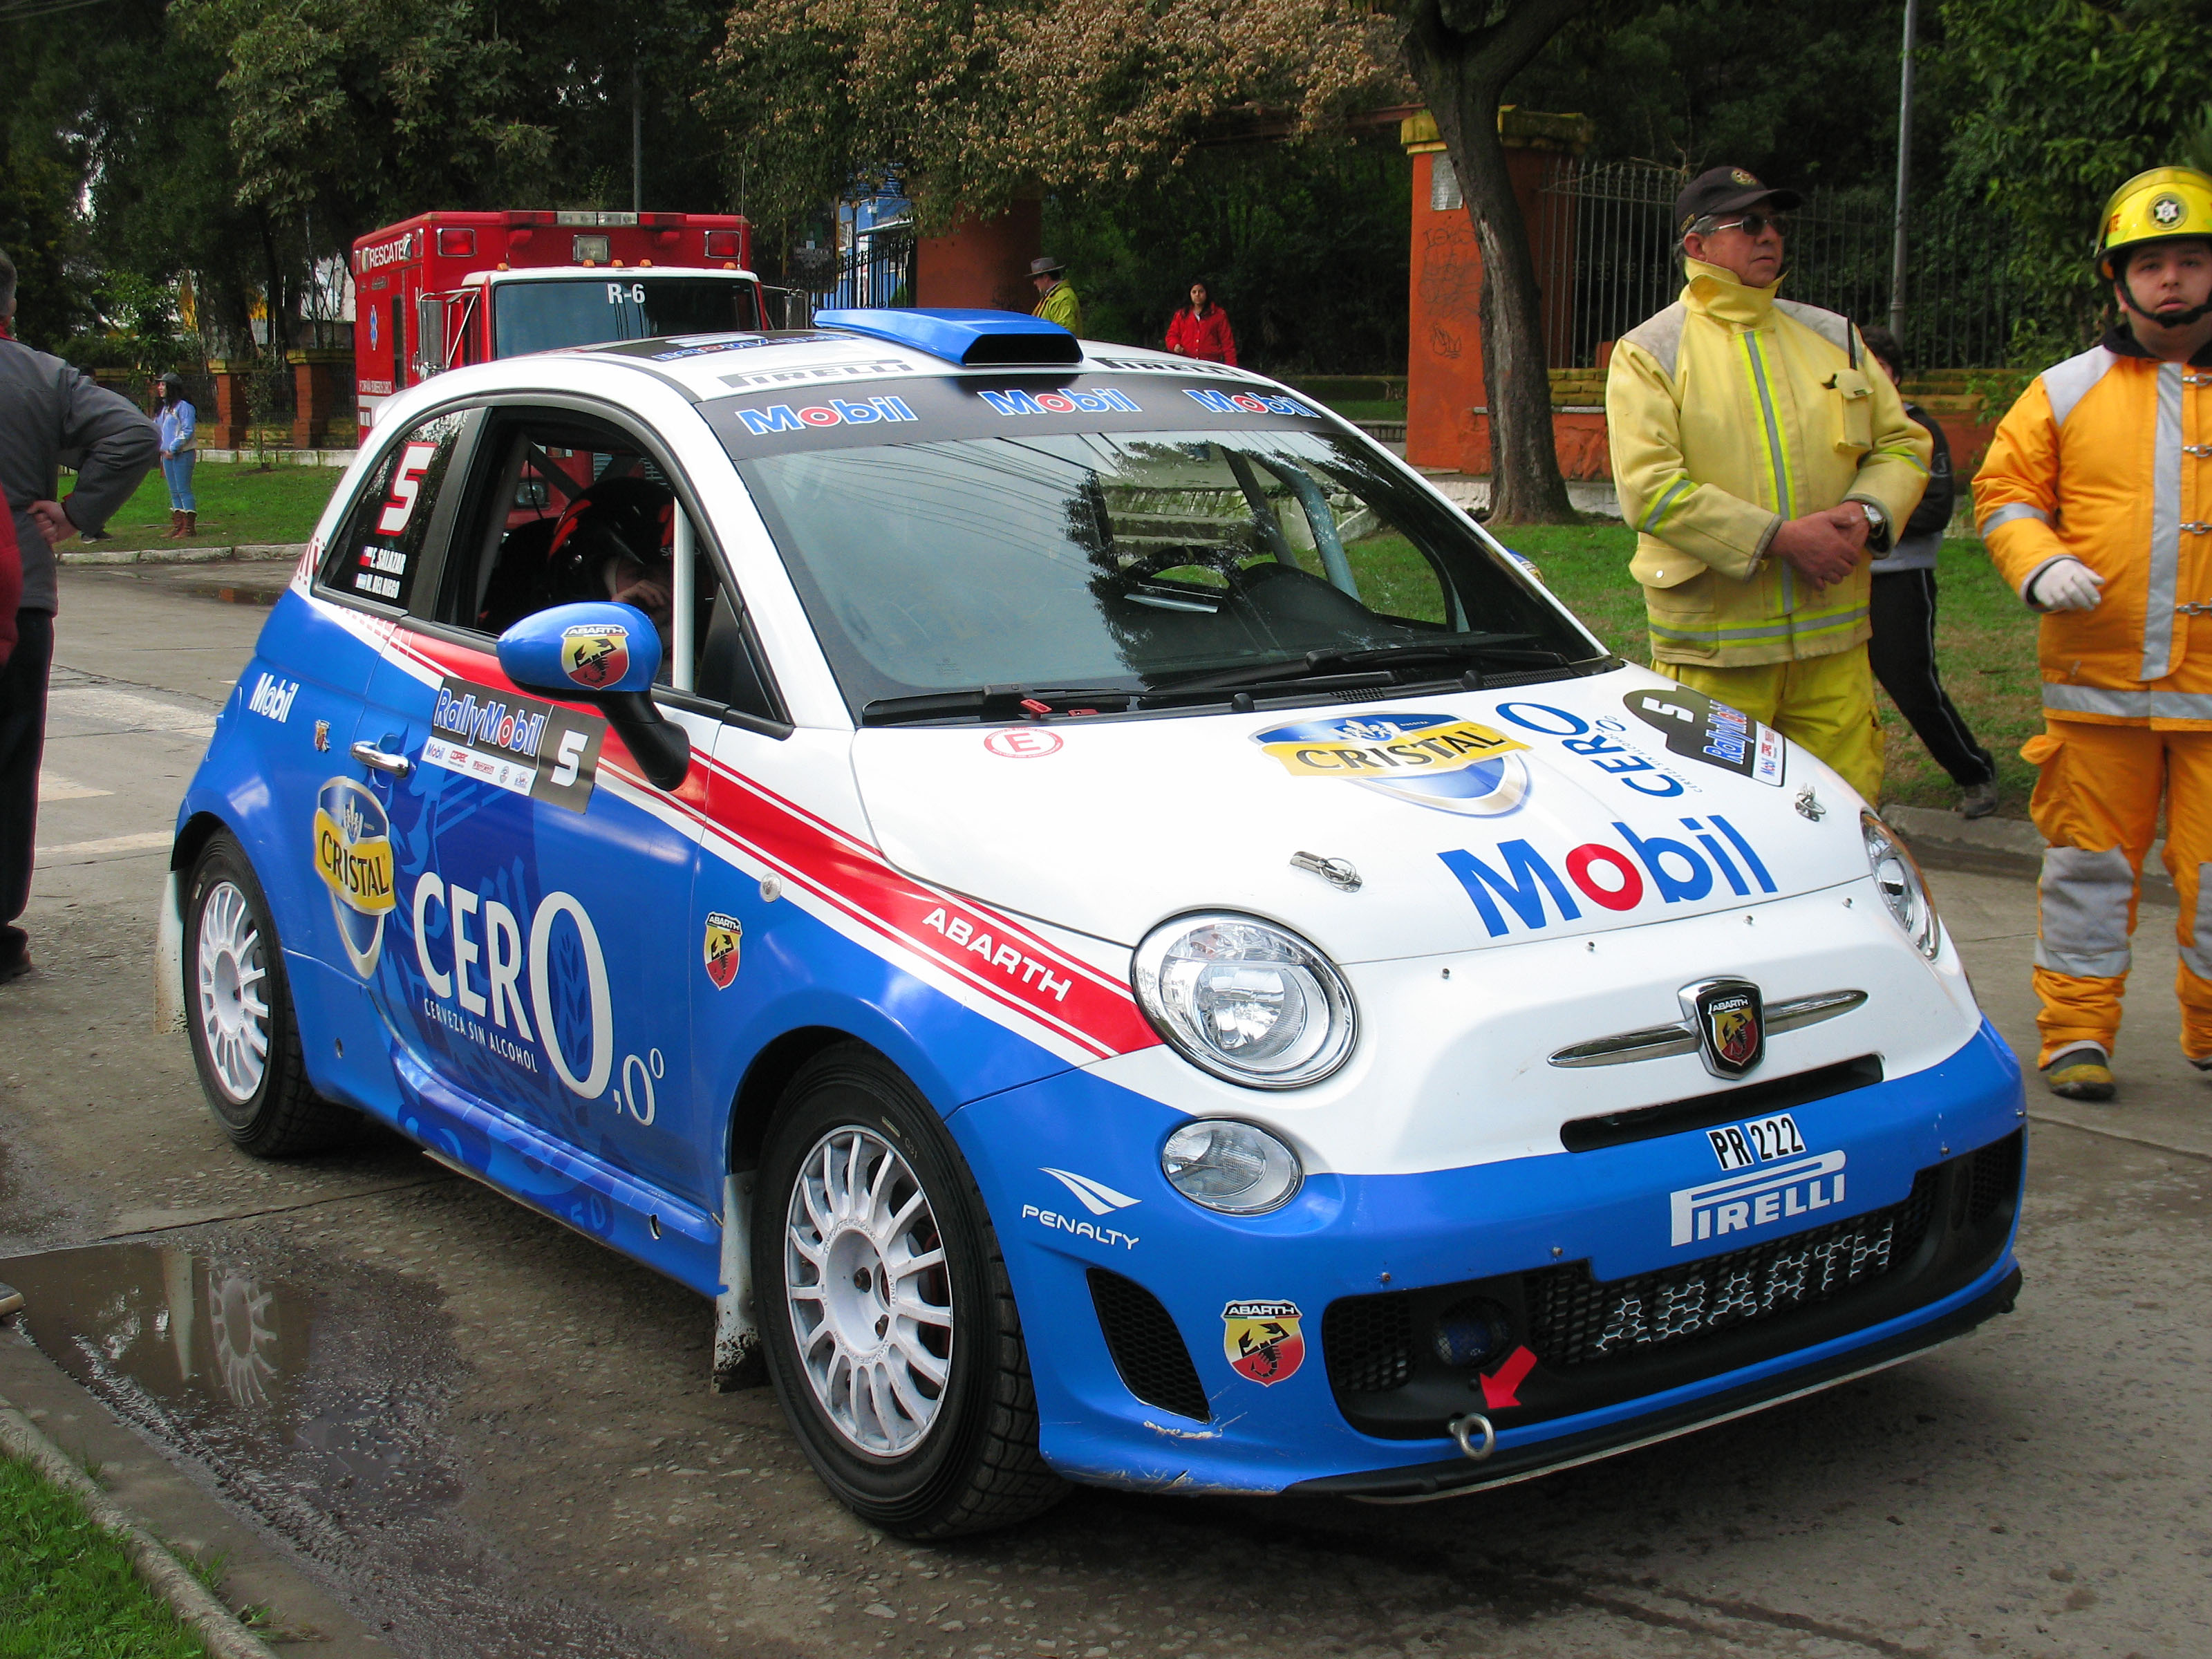 Fiat 500 Type 312 Abarth R3T - Racing Cars